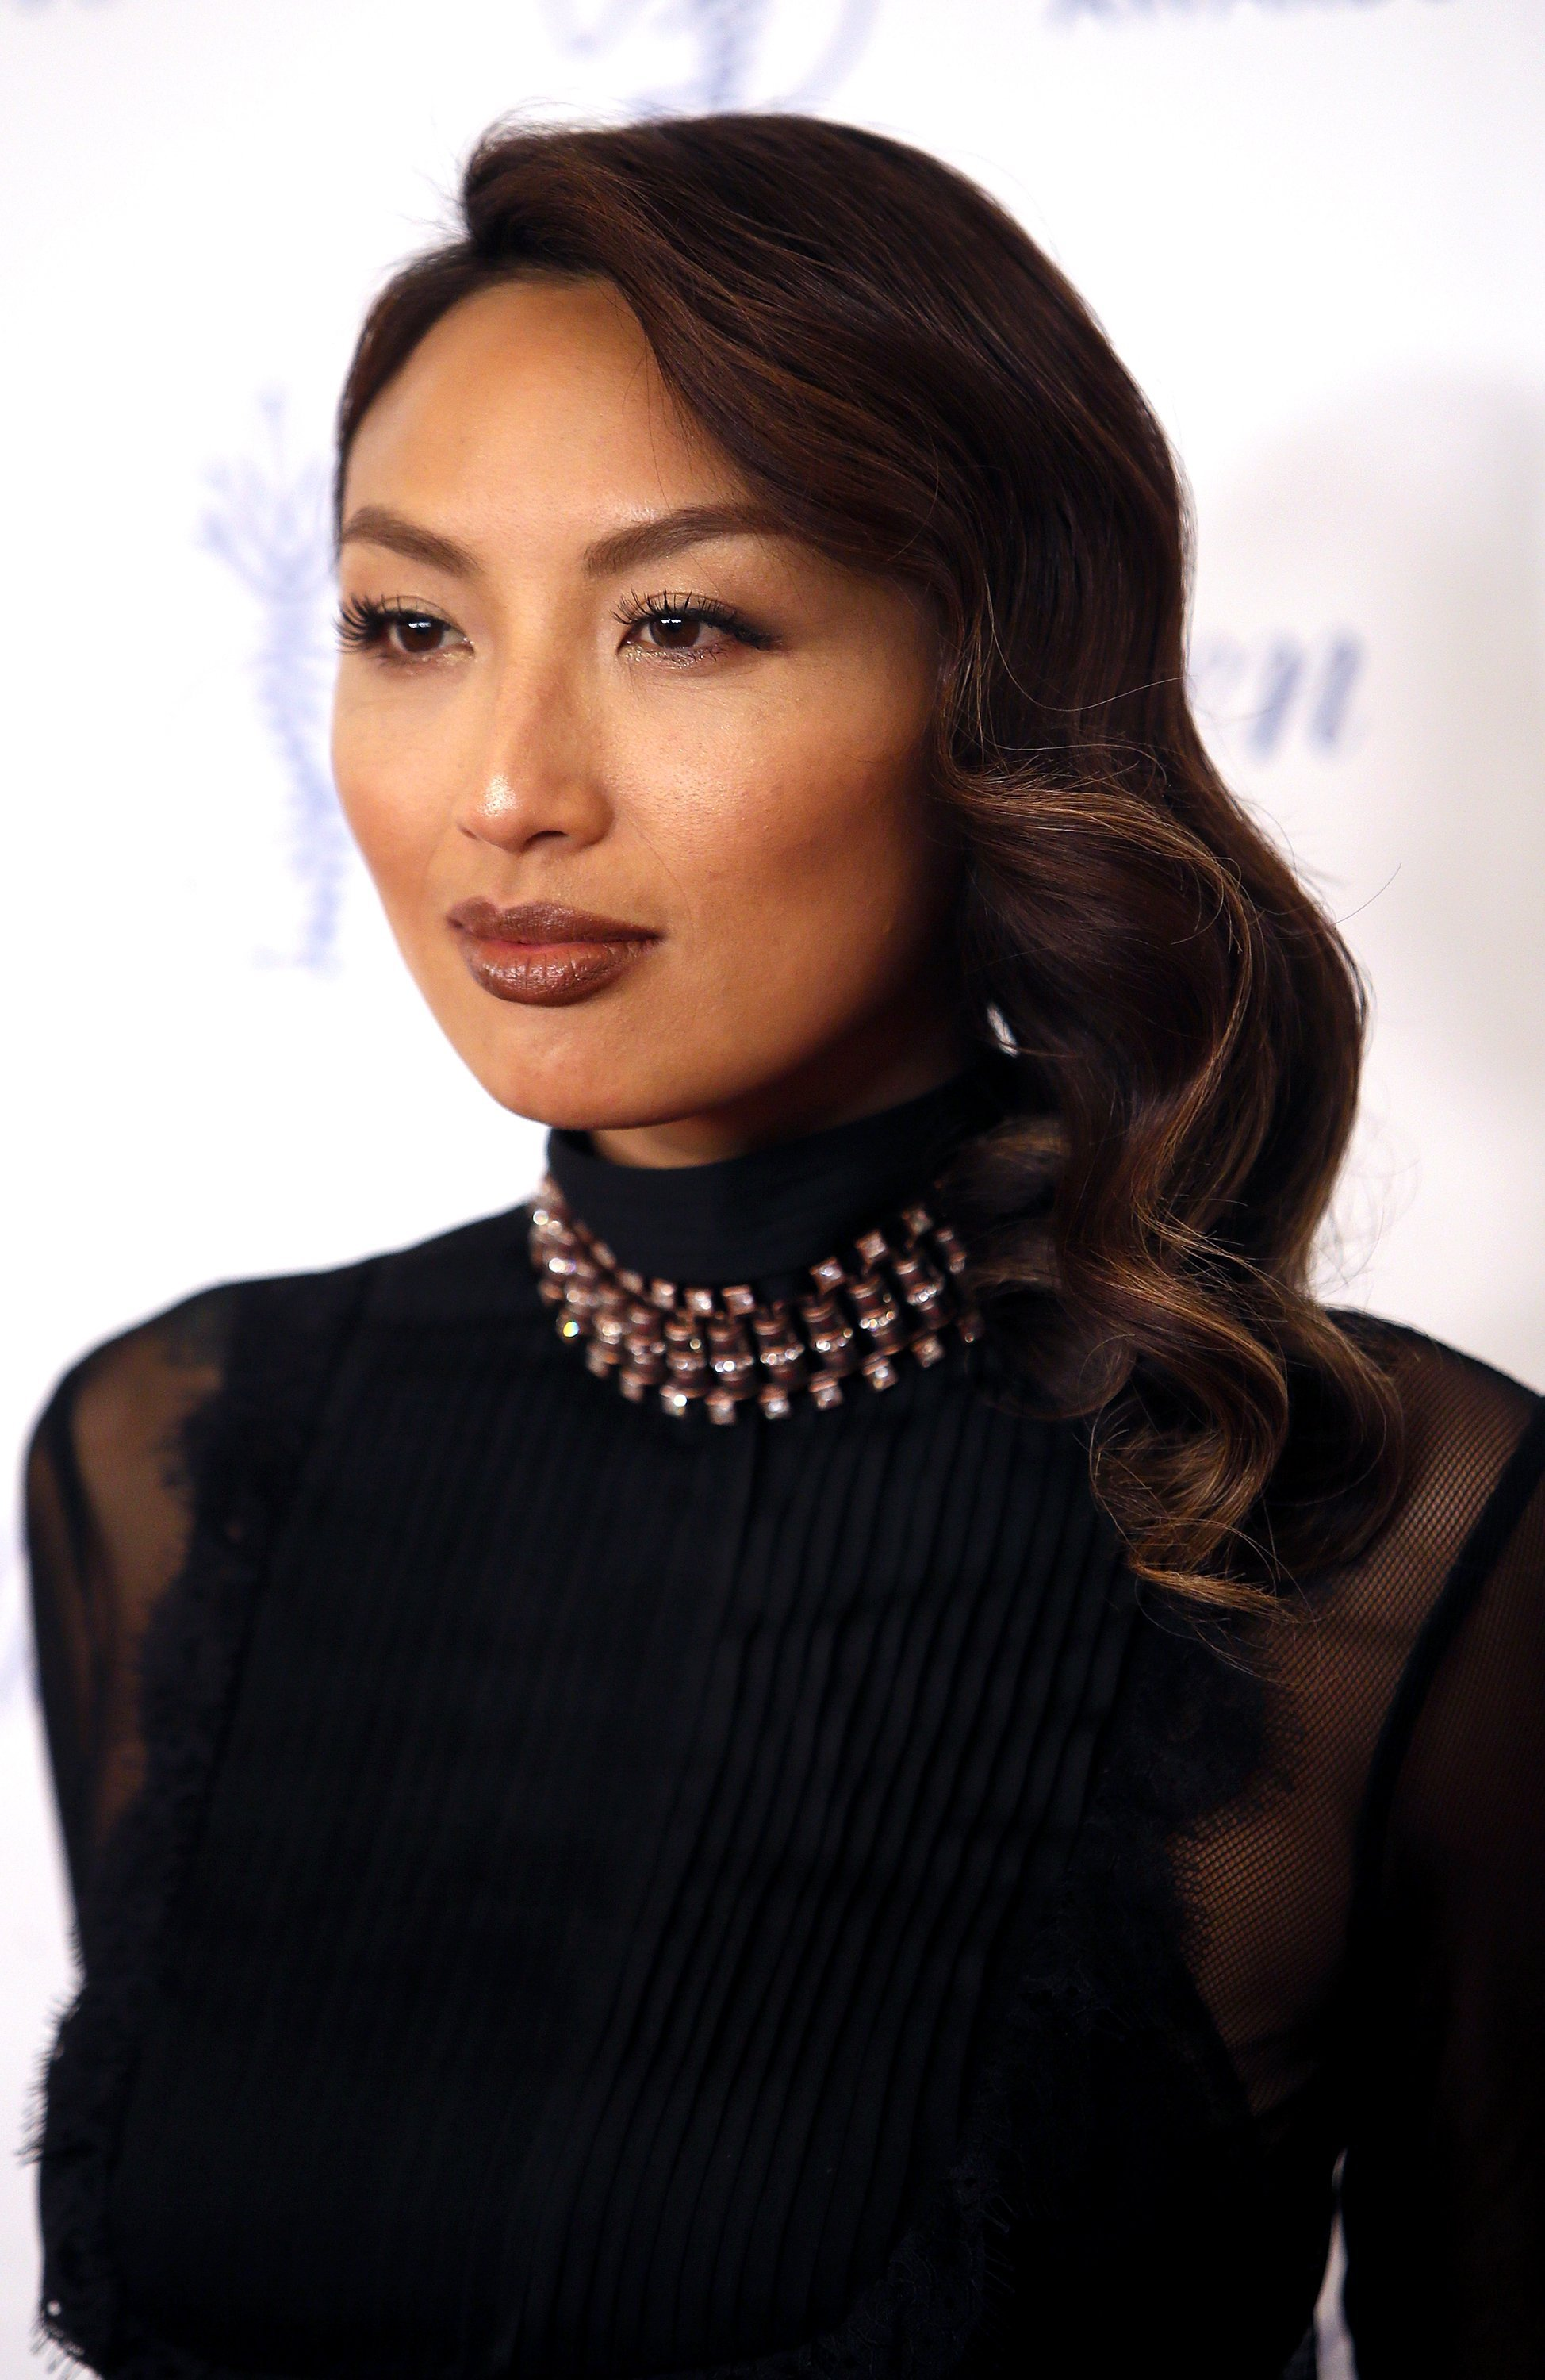 Jeannie Mai at the 32nd Annual Imagen Awards in August 2017. | Photo: Getty Images